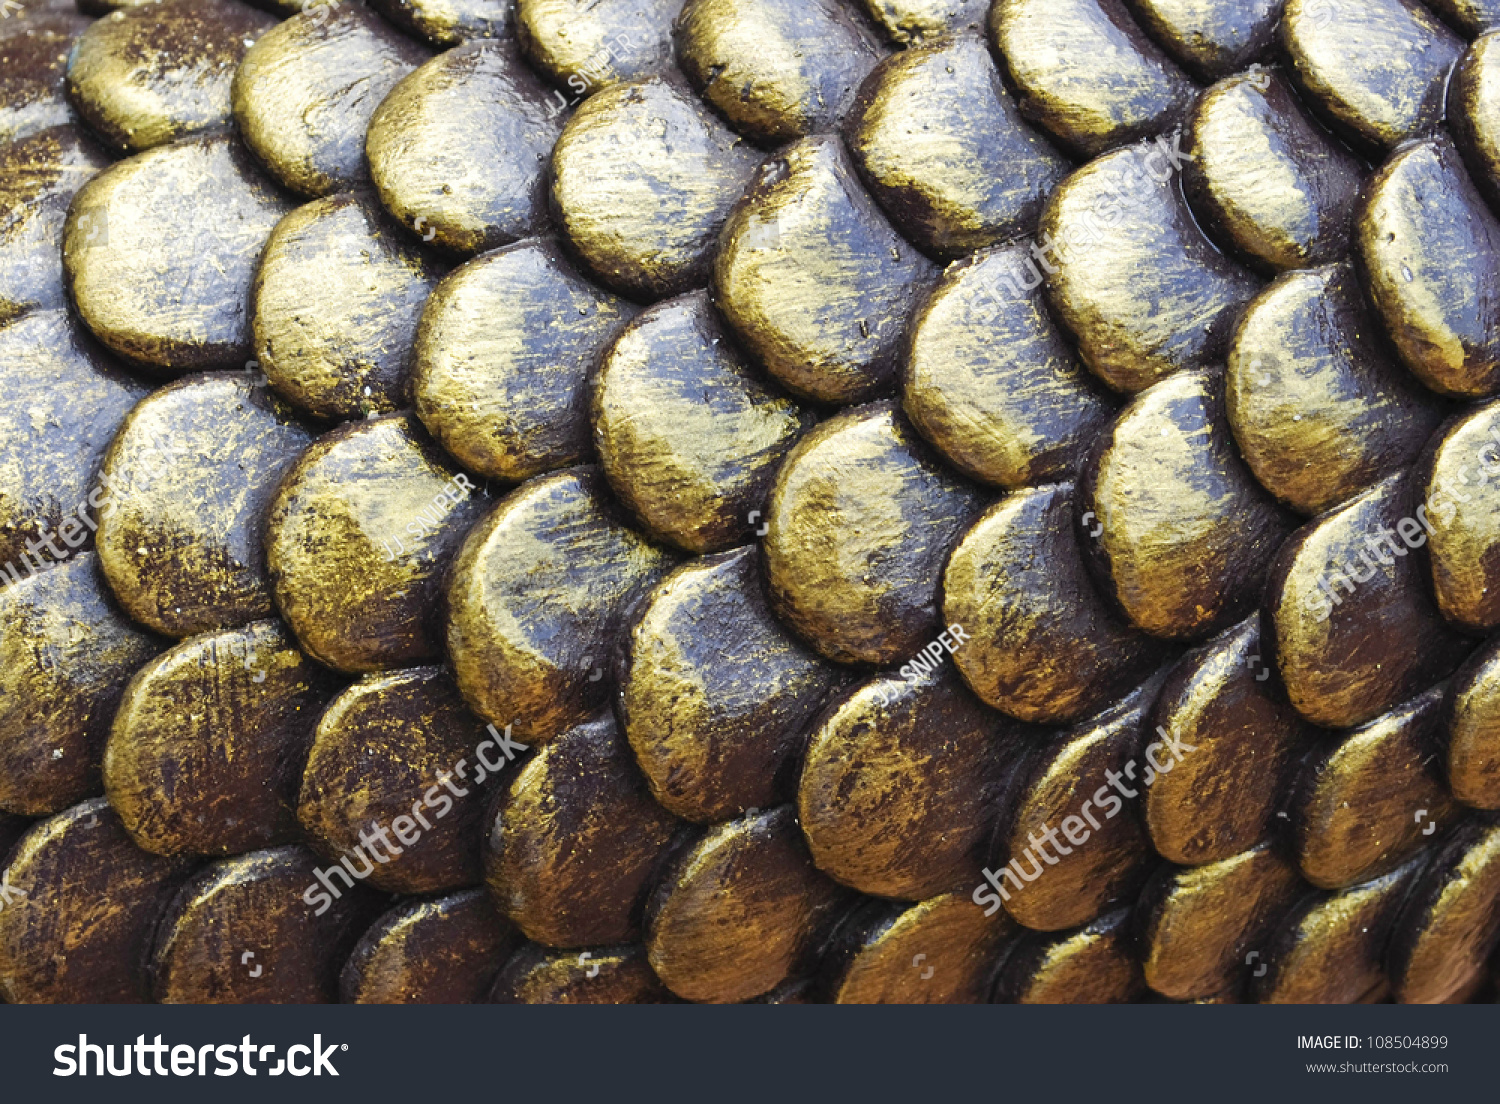 Texture of fish scales stock photo 108504899 shutterstock for Get fish scale